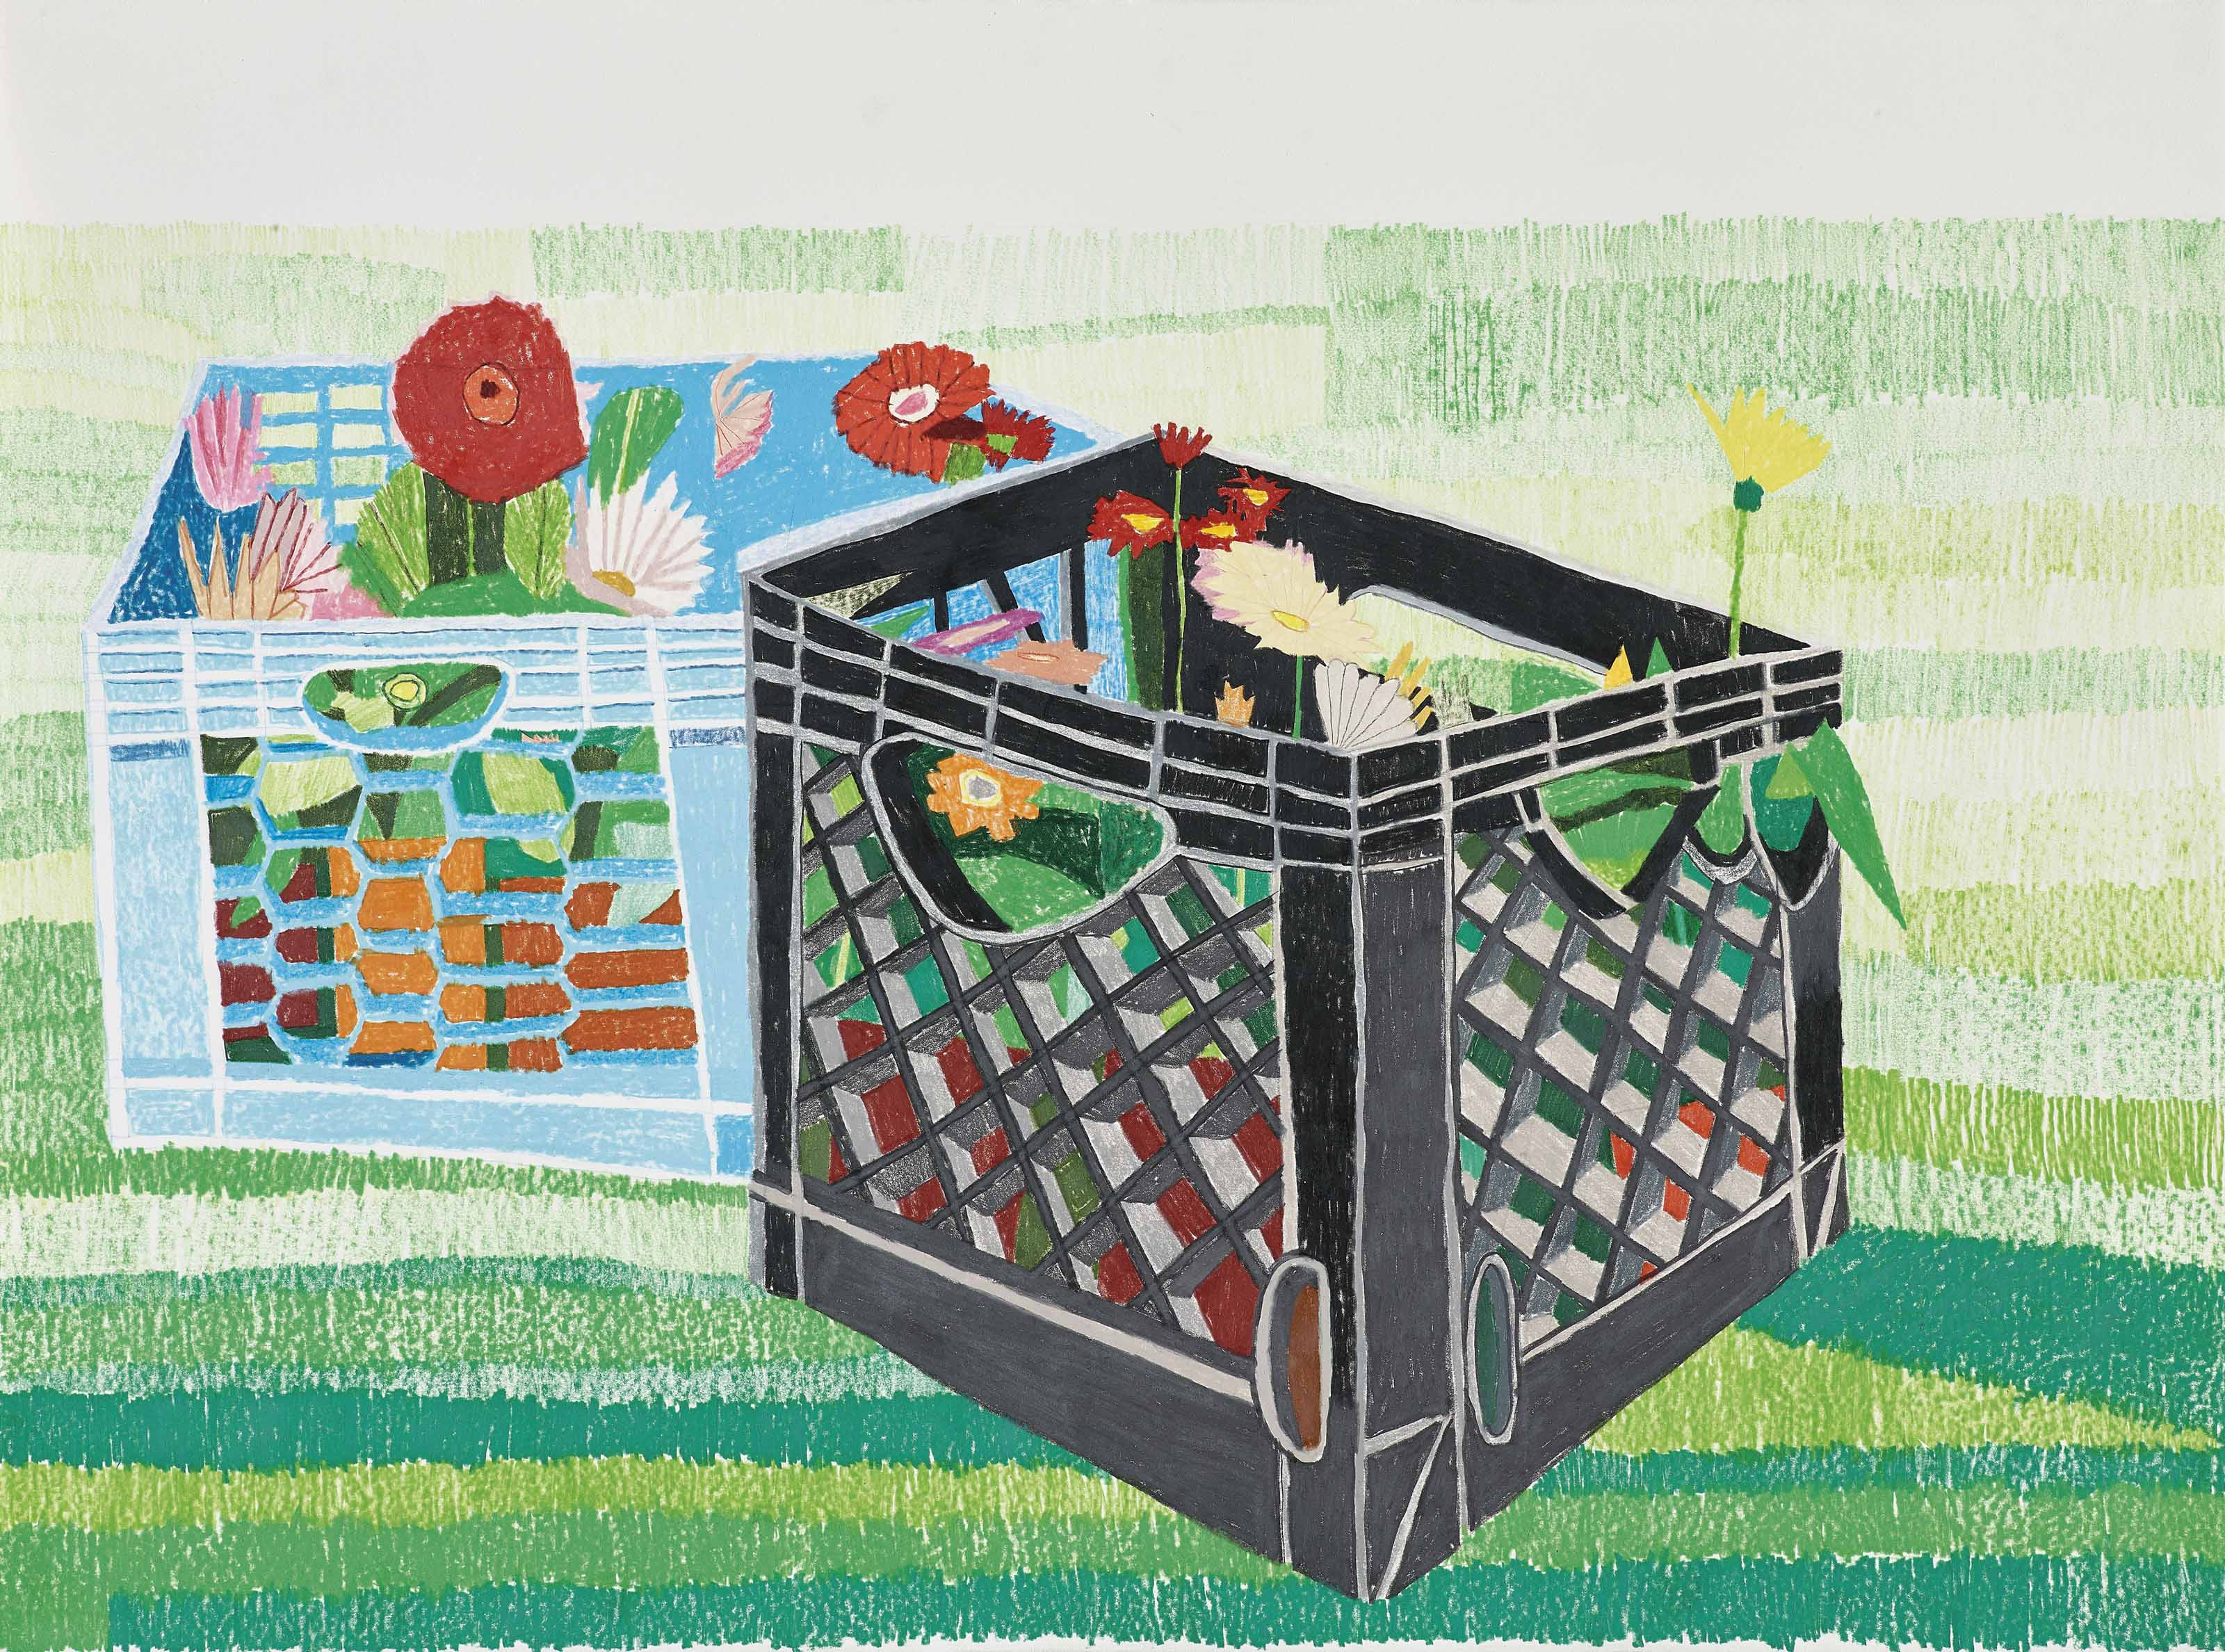 Jonas Wood (b. 1977), Day before Planting, 2007. 22 x 30 in (55.8 x 76.2 cm). Estimate £25,000-35,000. This lot is offered in the Post-War and Contemporary Art Day Auction on 7 March 2018  at Christie's in London